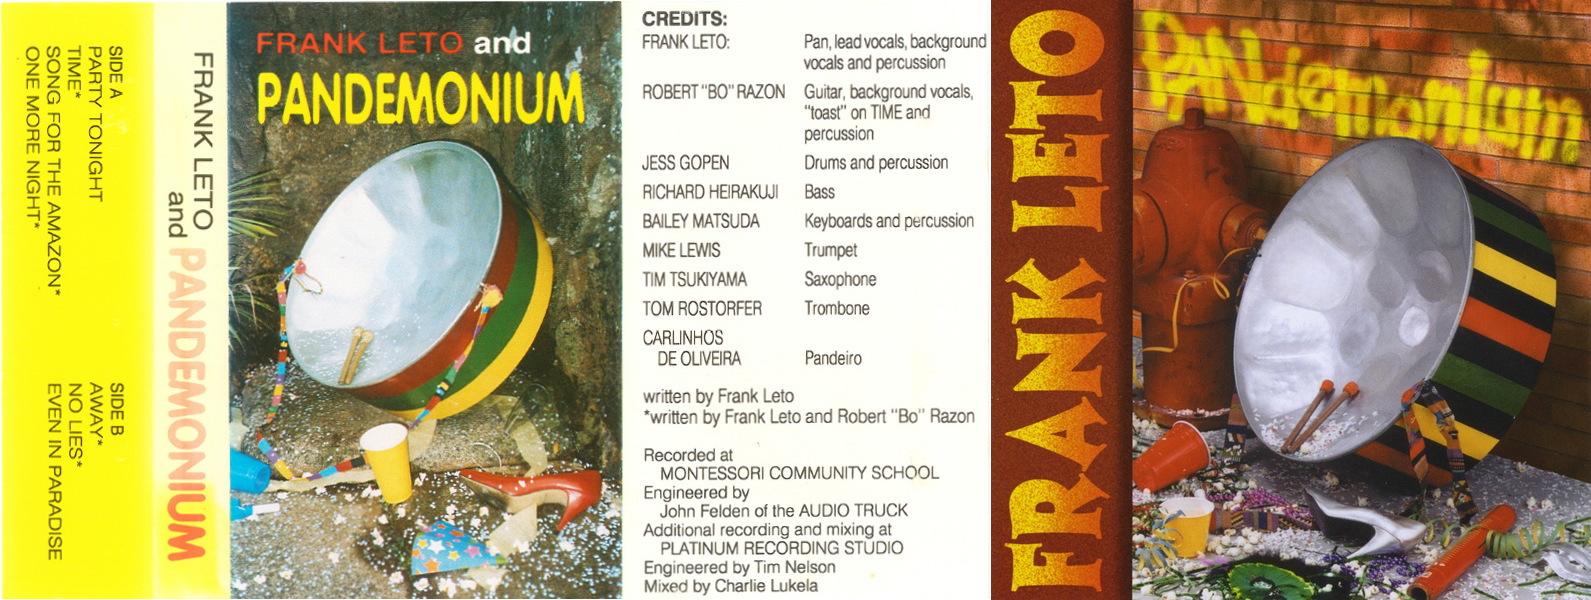 08-008-2 Frank Leto and PANdemonium – Frank Leto and PANdemonium